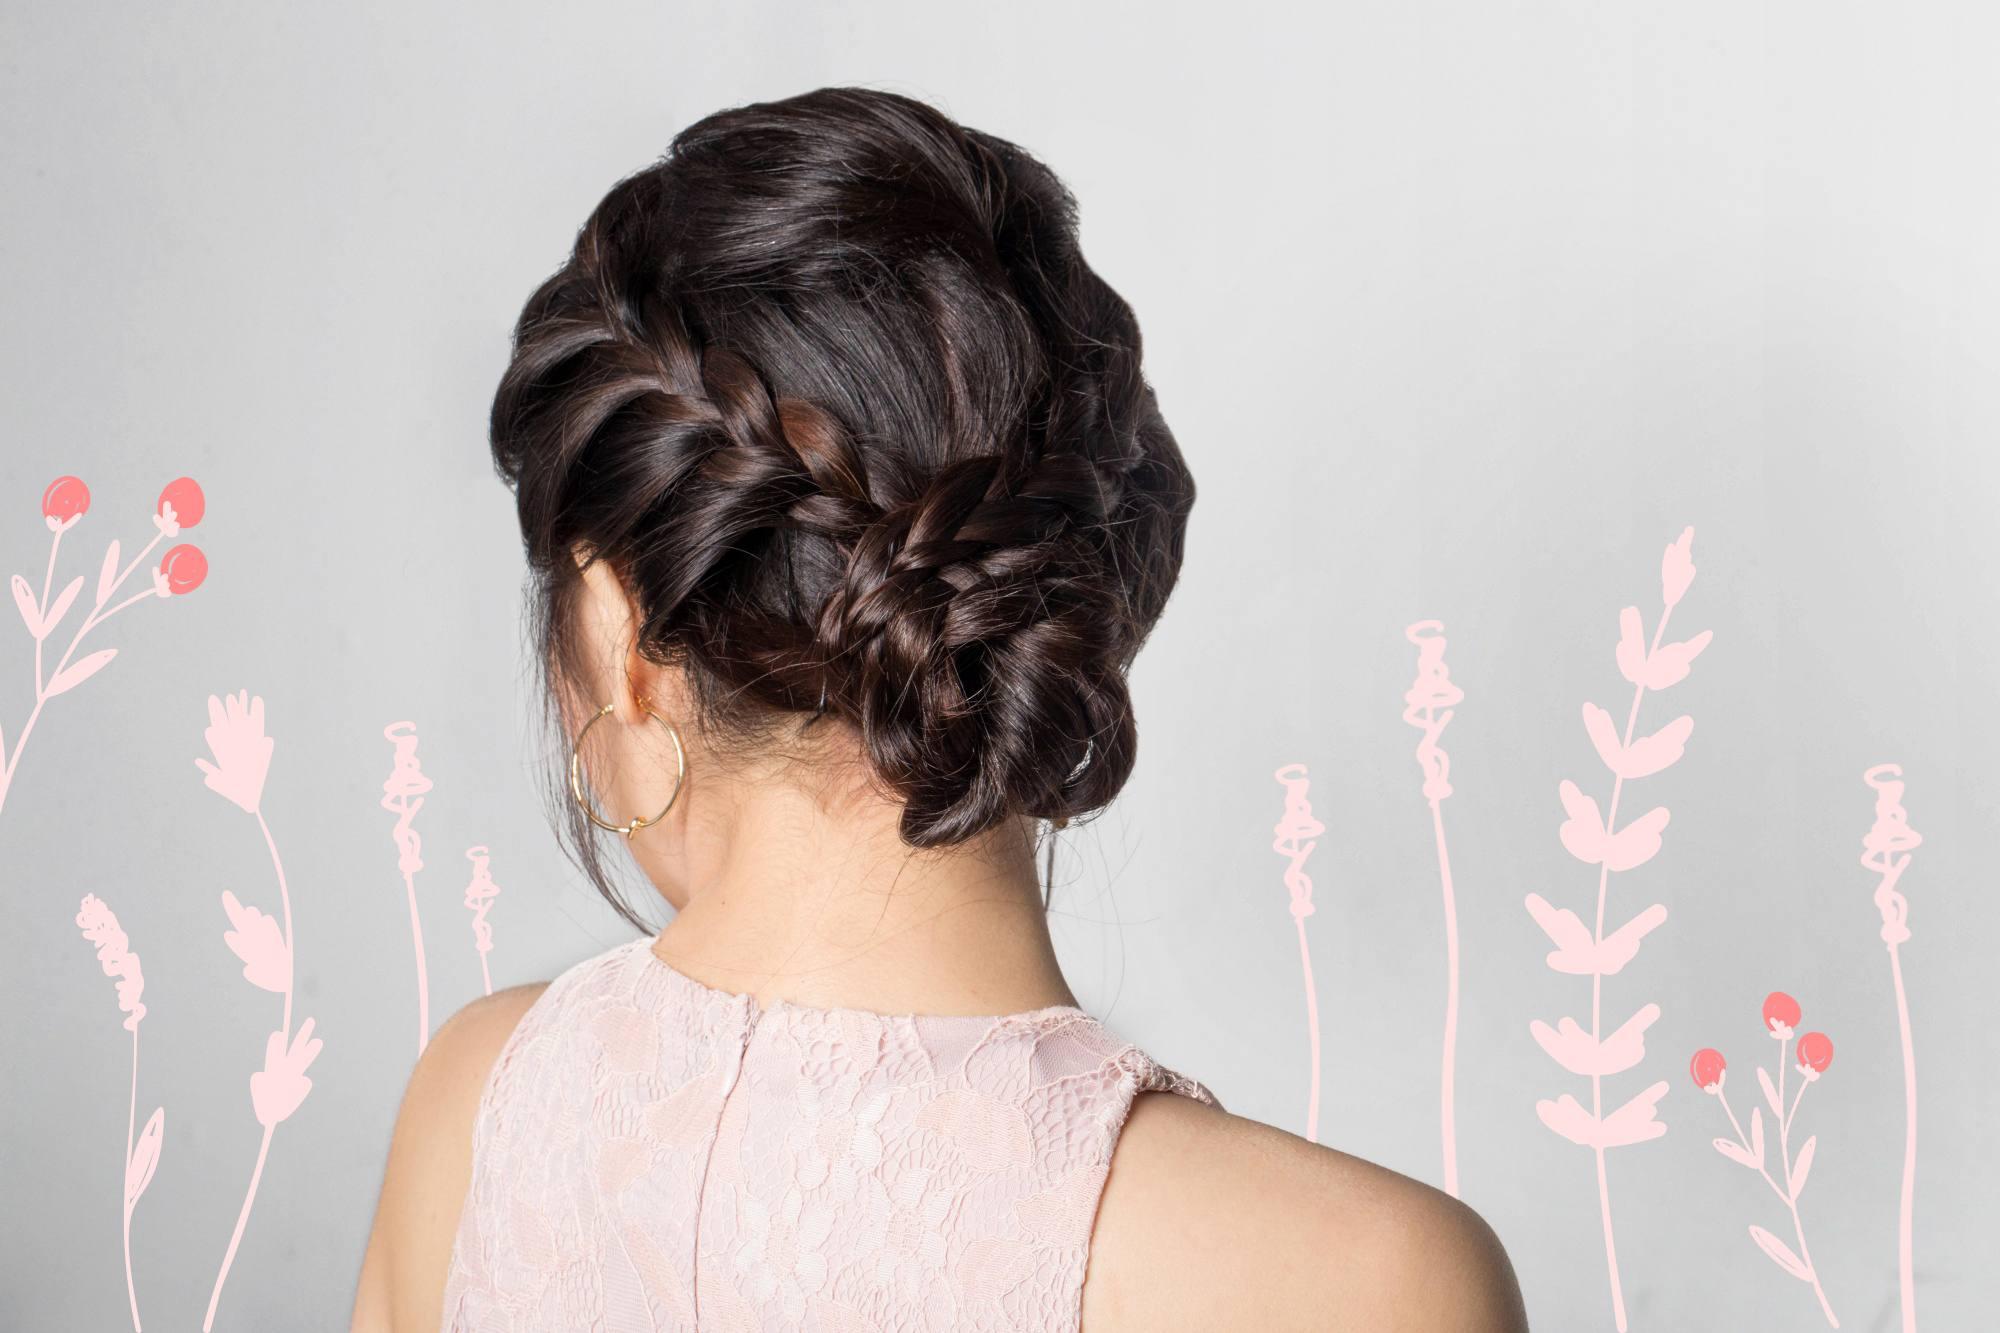 Flores de mayo hairstyles: Back shot of an Asian woman with hair in lace braid updo